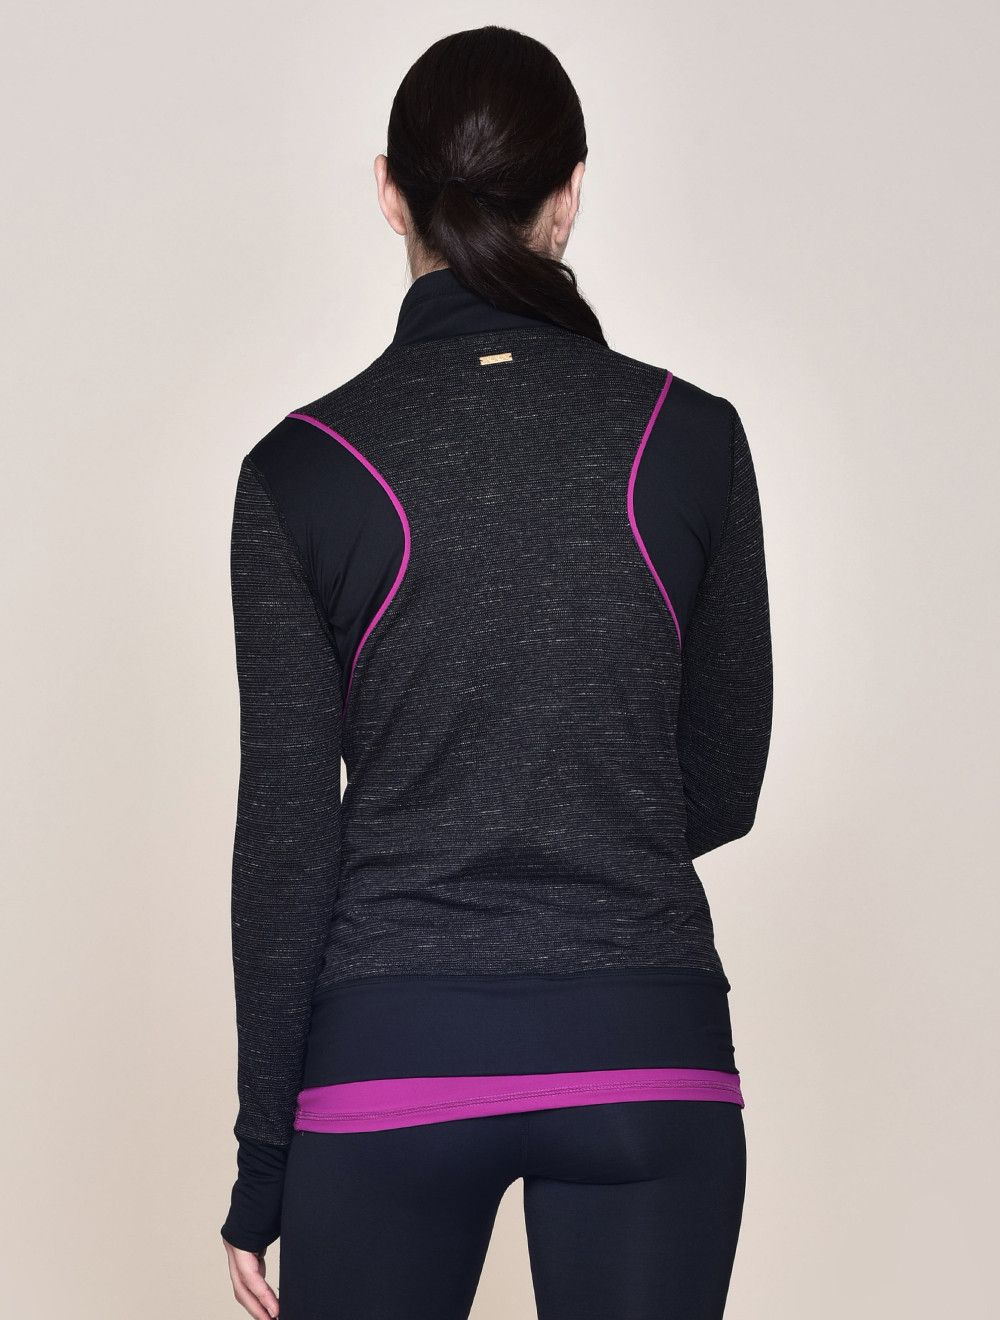 Women's Active Outerwear Jackets, Athletic jacket, Sport